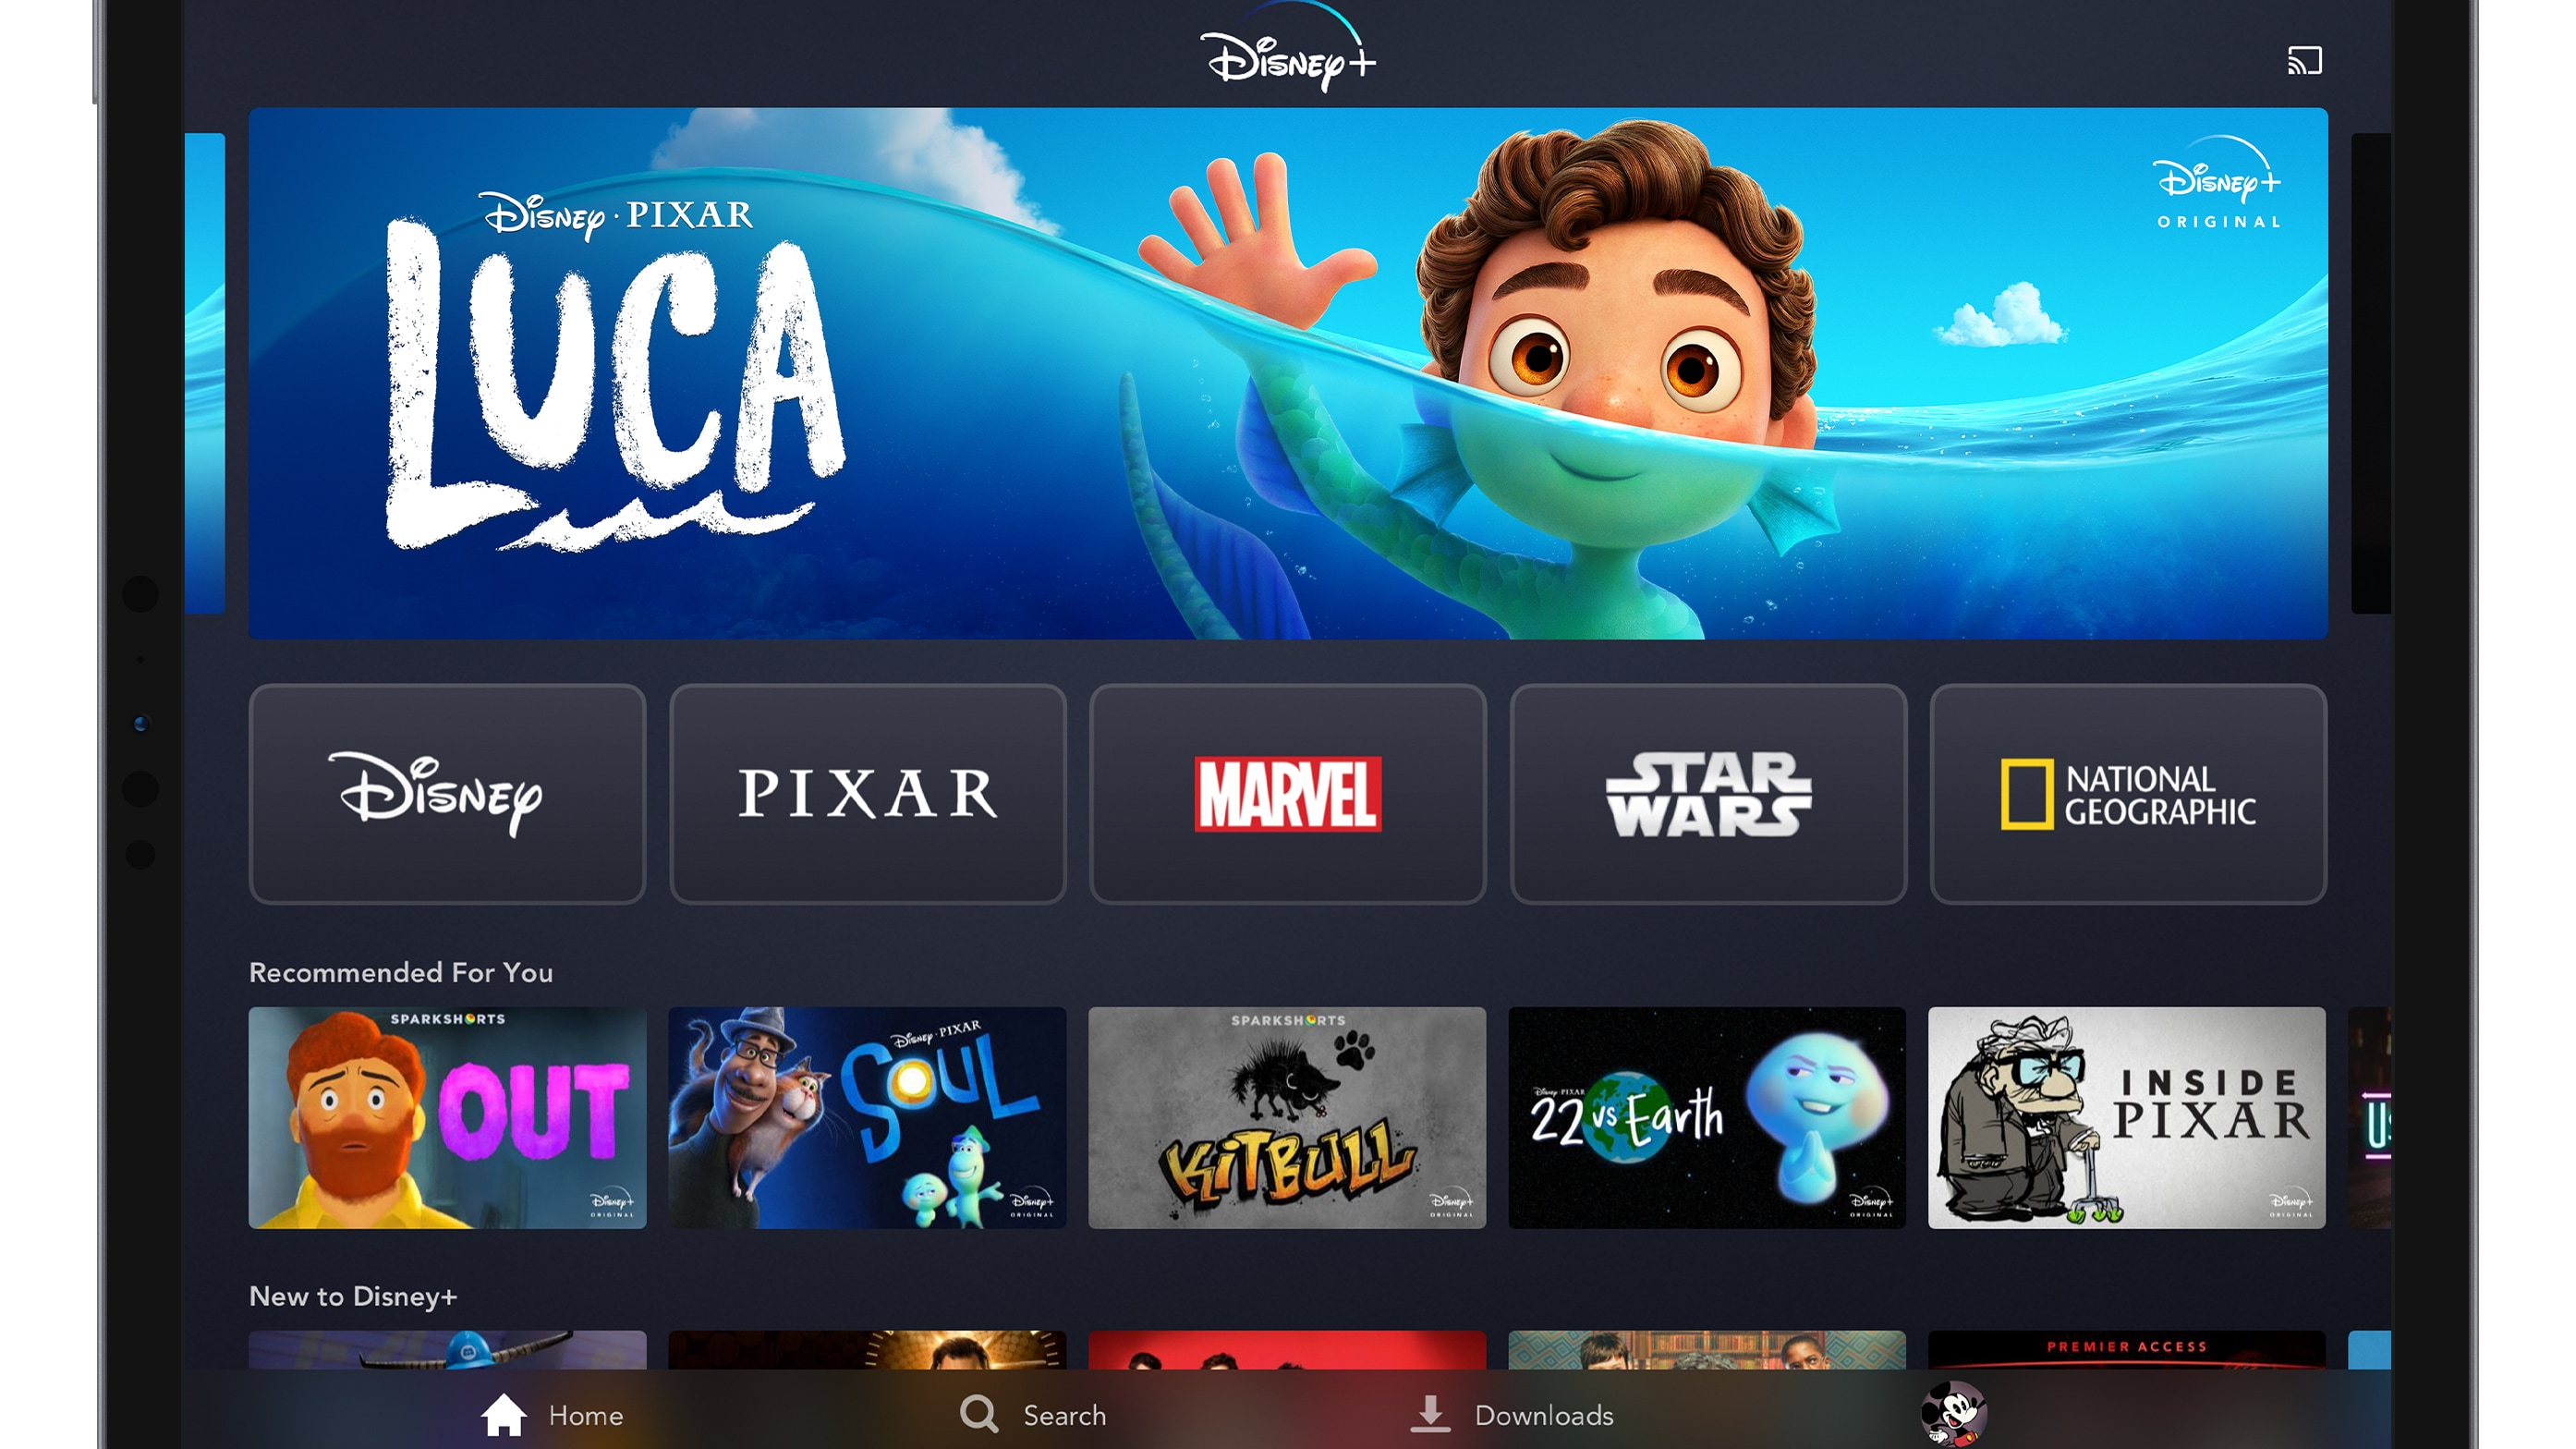 Disney+ App Home Page on Tablet Device